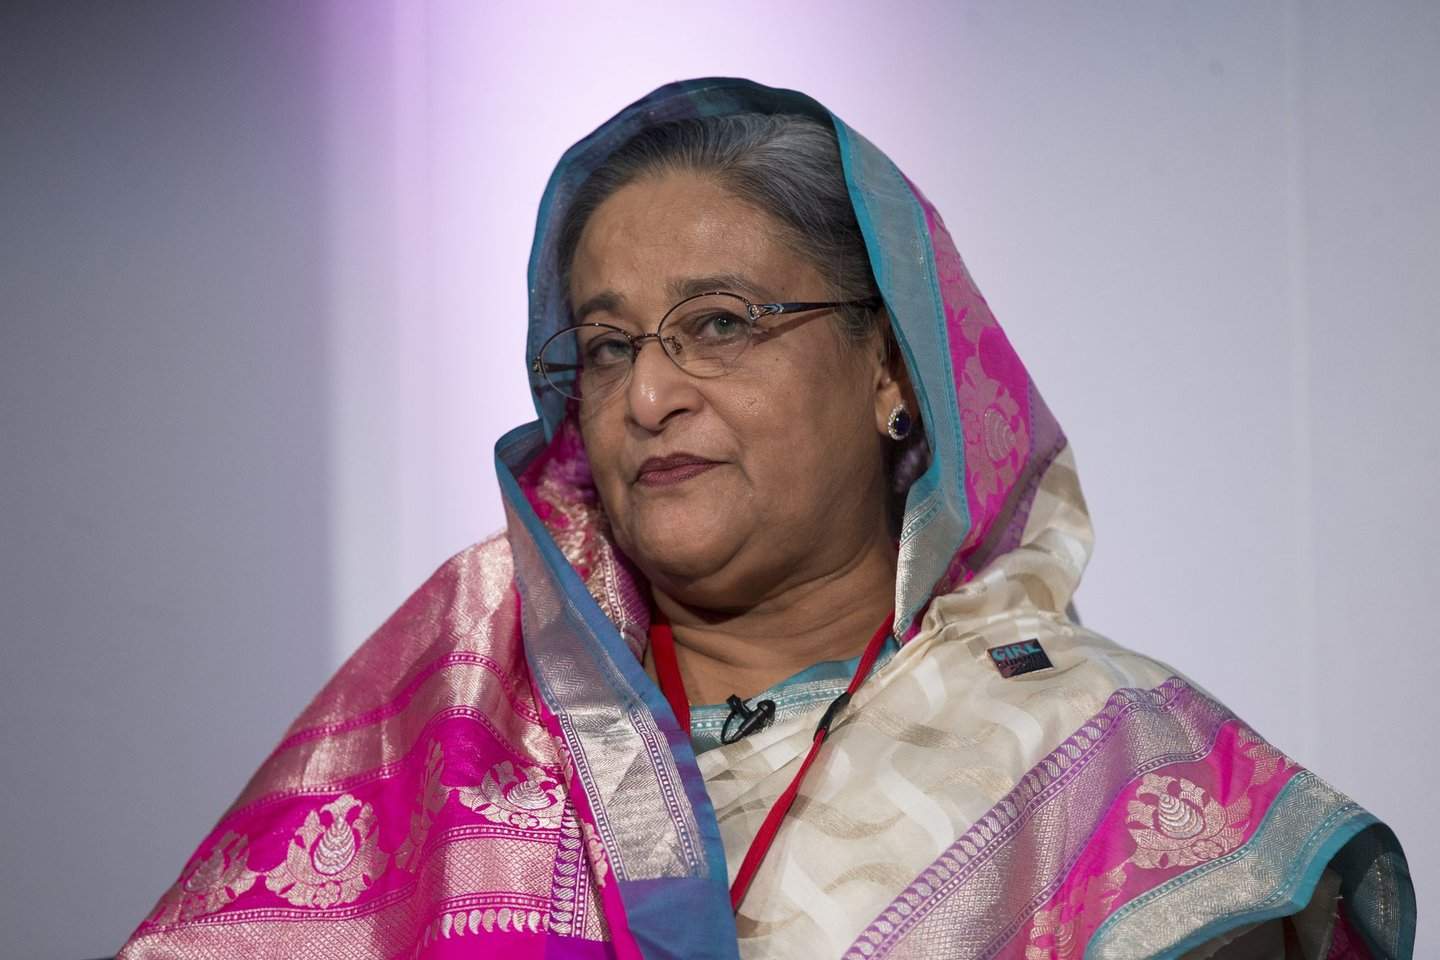 LONDON, ENGLAND - JULY 22: Sheikh Hasina, the Prime Minister of Bangladesh, speaks at the 'Girl Summit 2014' in Walworth Academy on July 22, 2014 in London, England. At the one-day summit the government has announced that parents will face prosecution if they fail to prevent their daughters suffering female genital mutilation (FGM). (Photo by Oli Scarff/Getty Images)